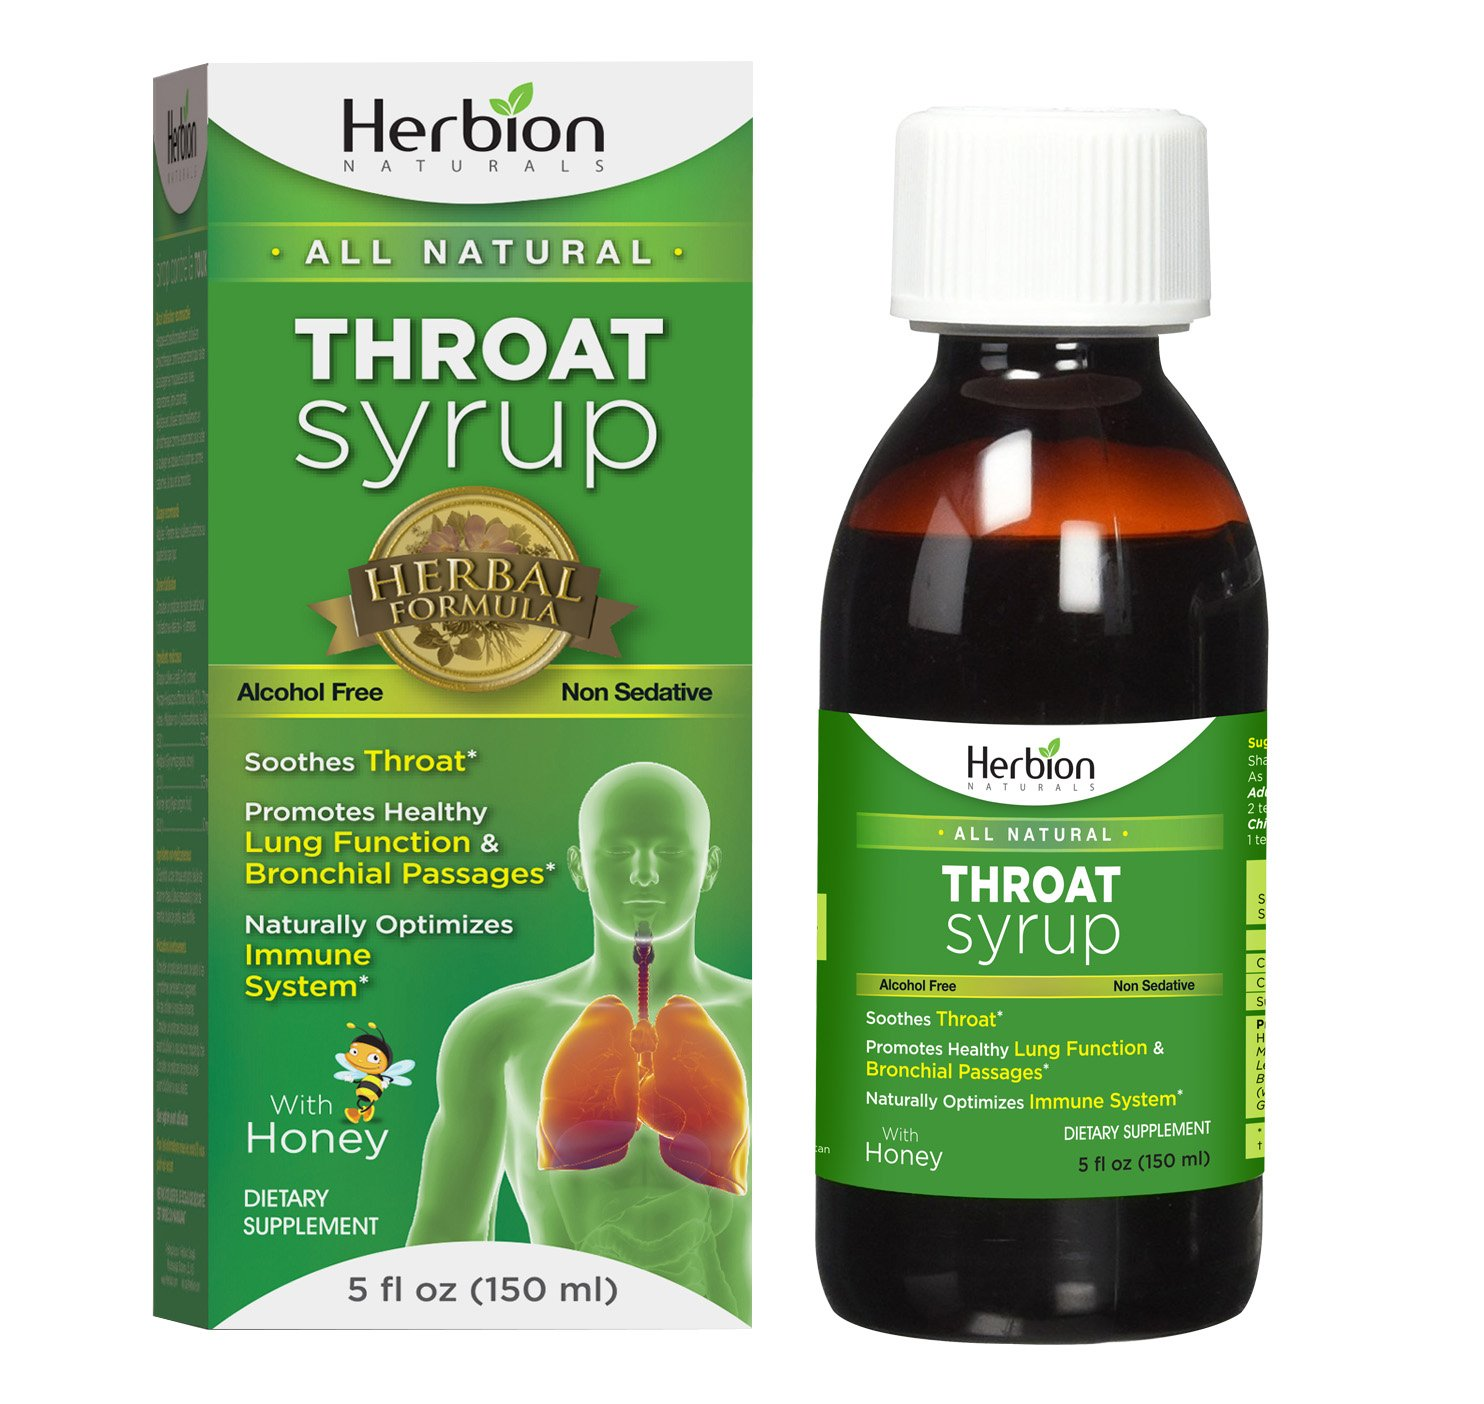 Herbion Naturals Throat Syrup with Honey,5 fl oz - Naturally Tasty, Relieves Cough, Soothes Throat, Promotes Healthy Bronchial Mucosa and Lung Function